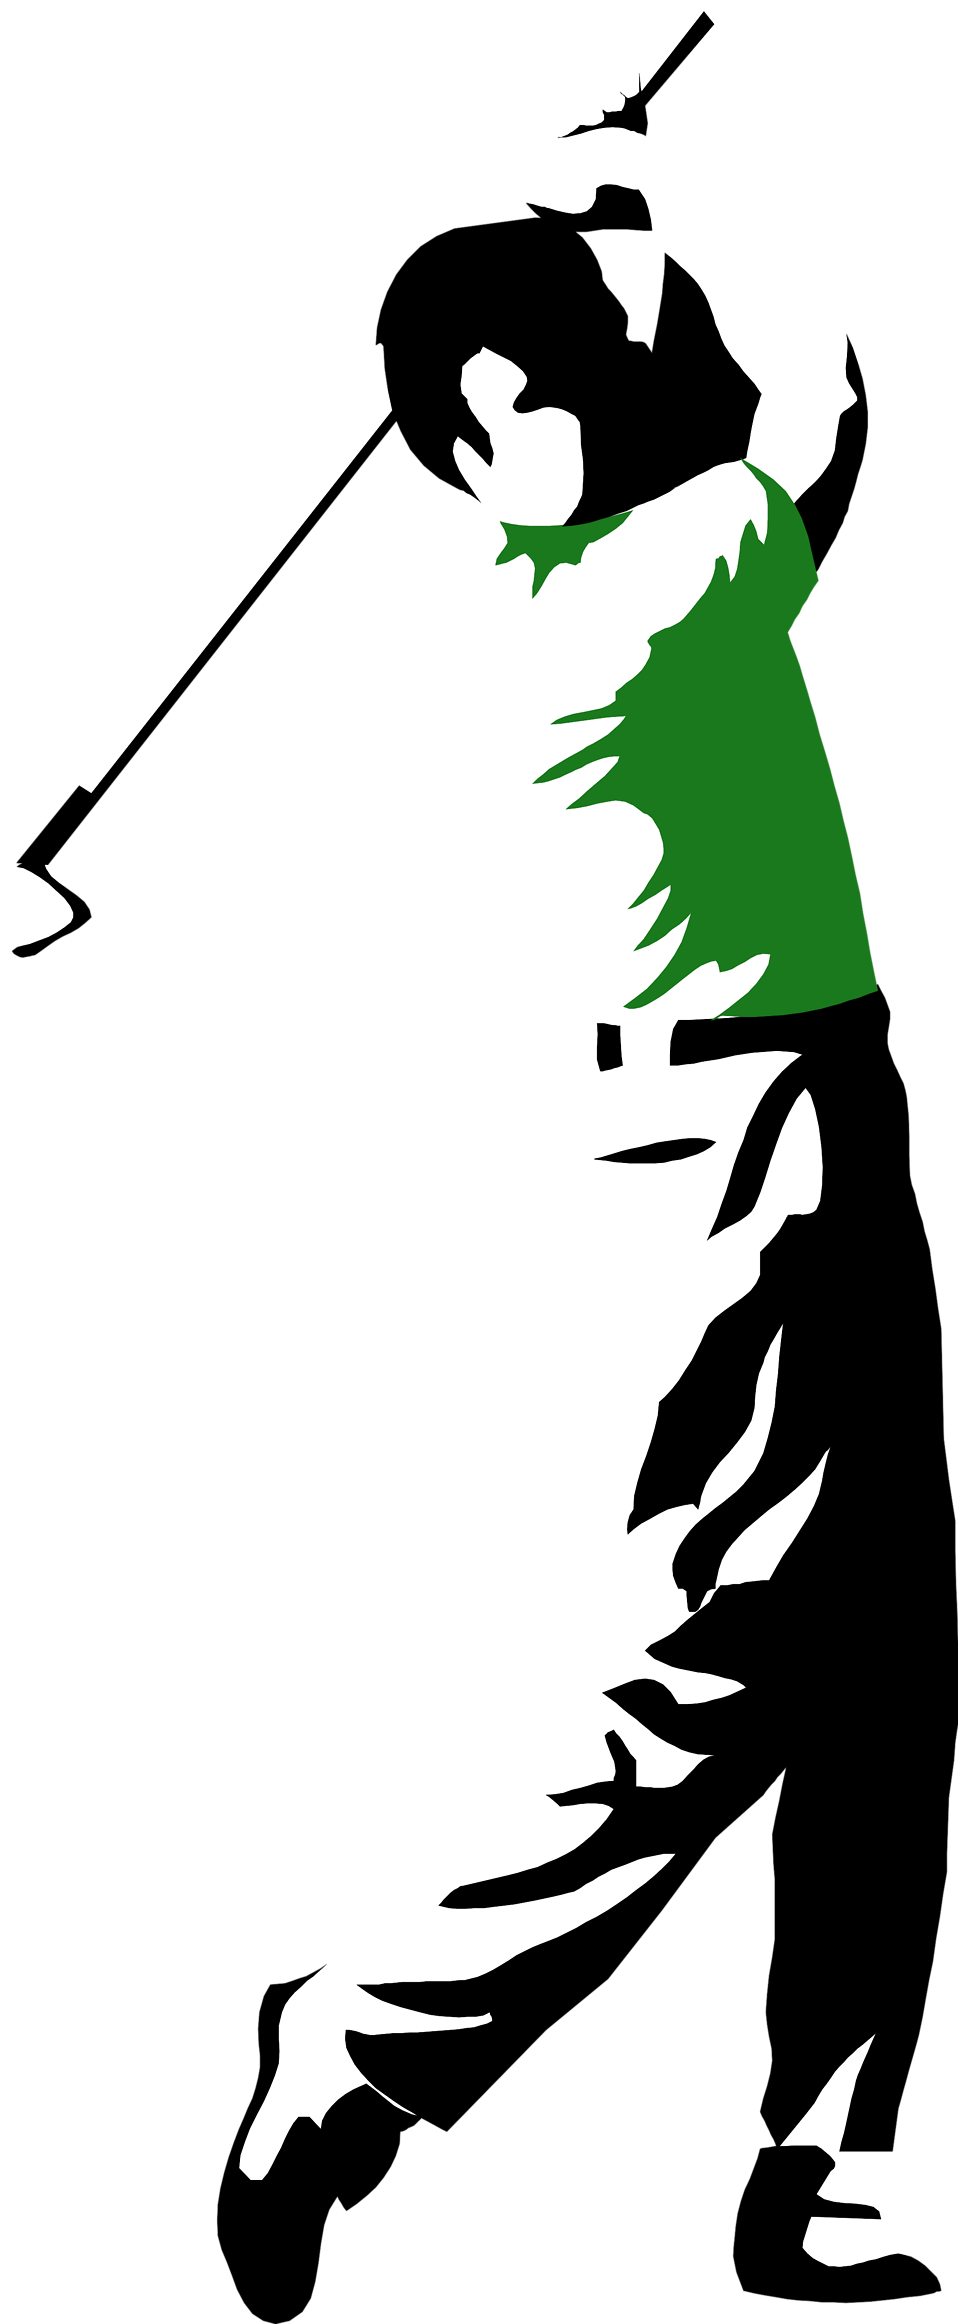 svg black and white library Free stock photo illustration. Golfer clipart golf group